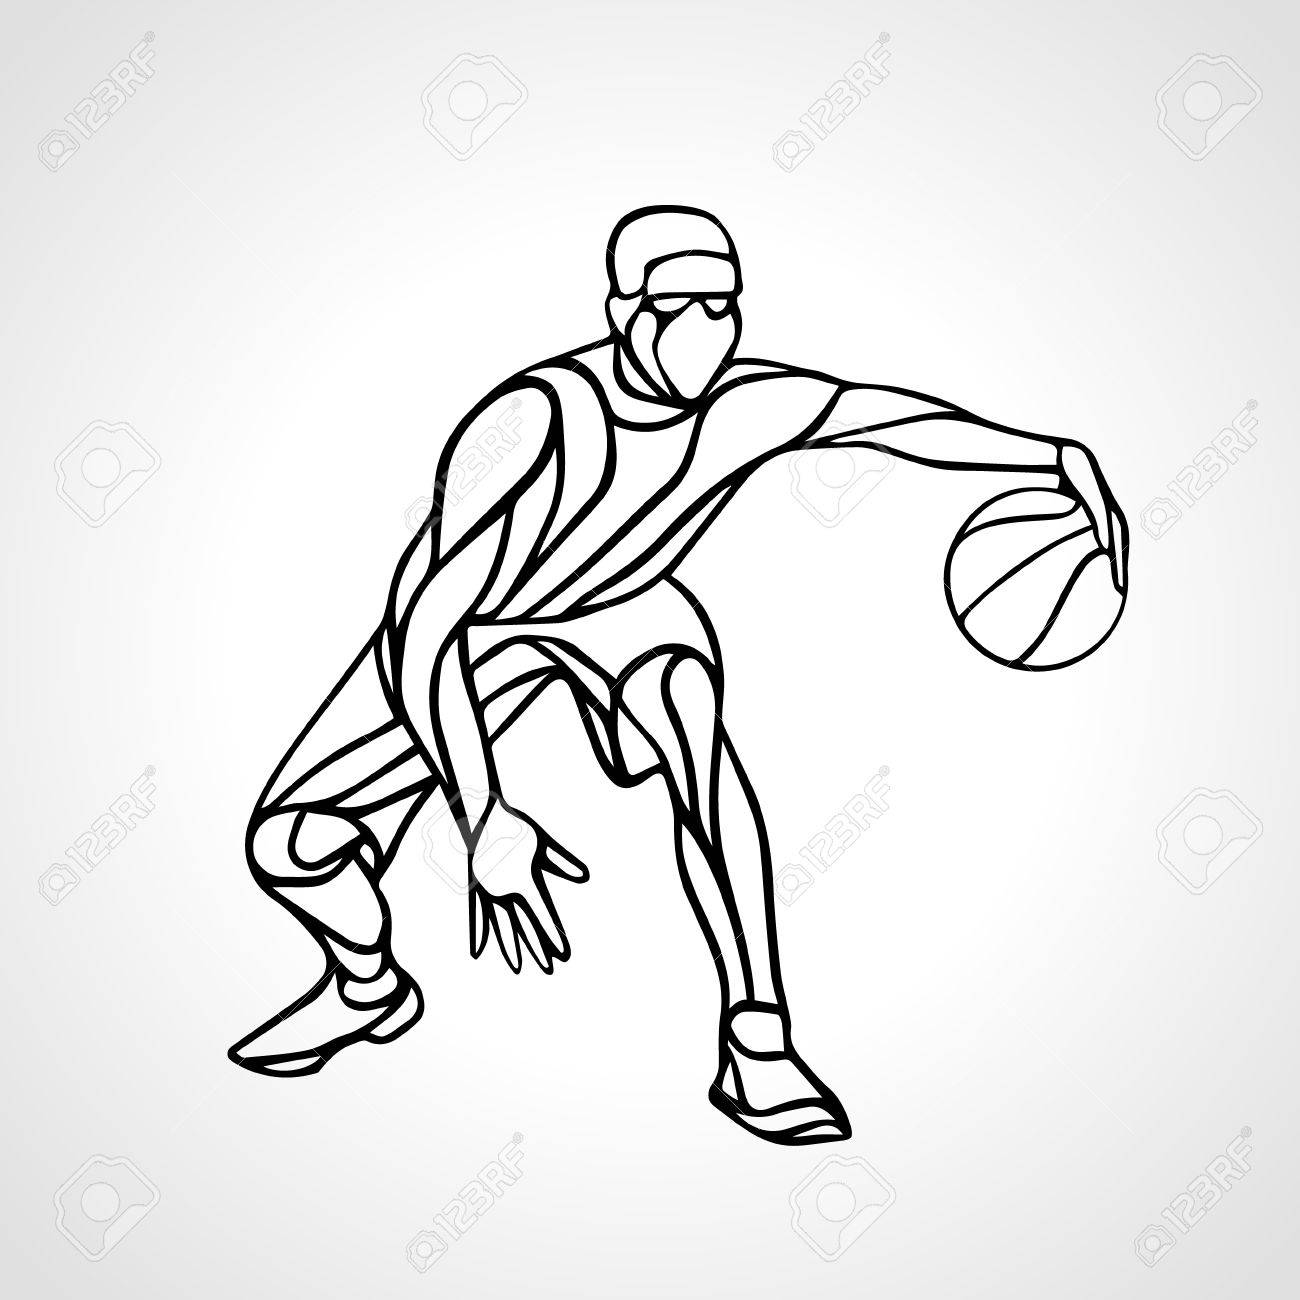 1300x1300 Basketball Player Abstract Silhouette. Crossover Dribble. Royalty